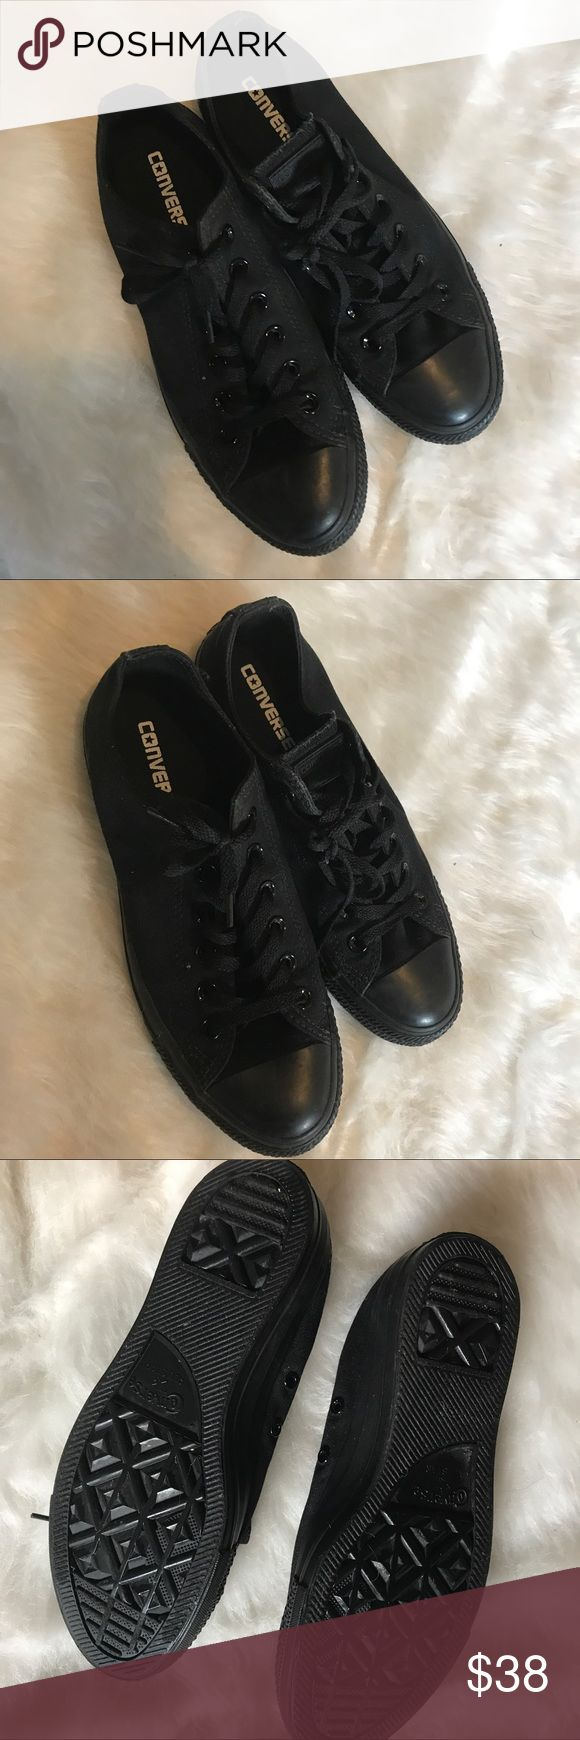 All black chuck Taylor all star converse black 9 Solid black chuck Taylor all star converse shoes size 9. Barely worn only some light wear on soles. Converse Shoes